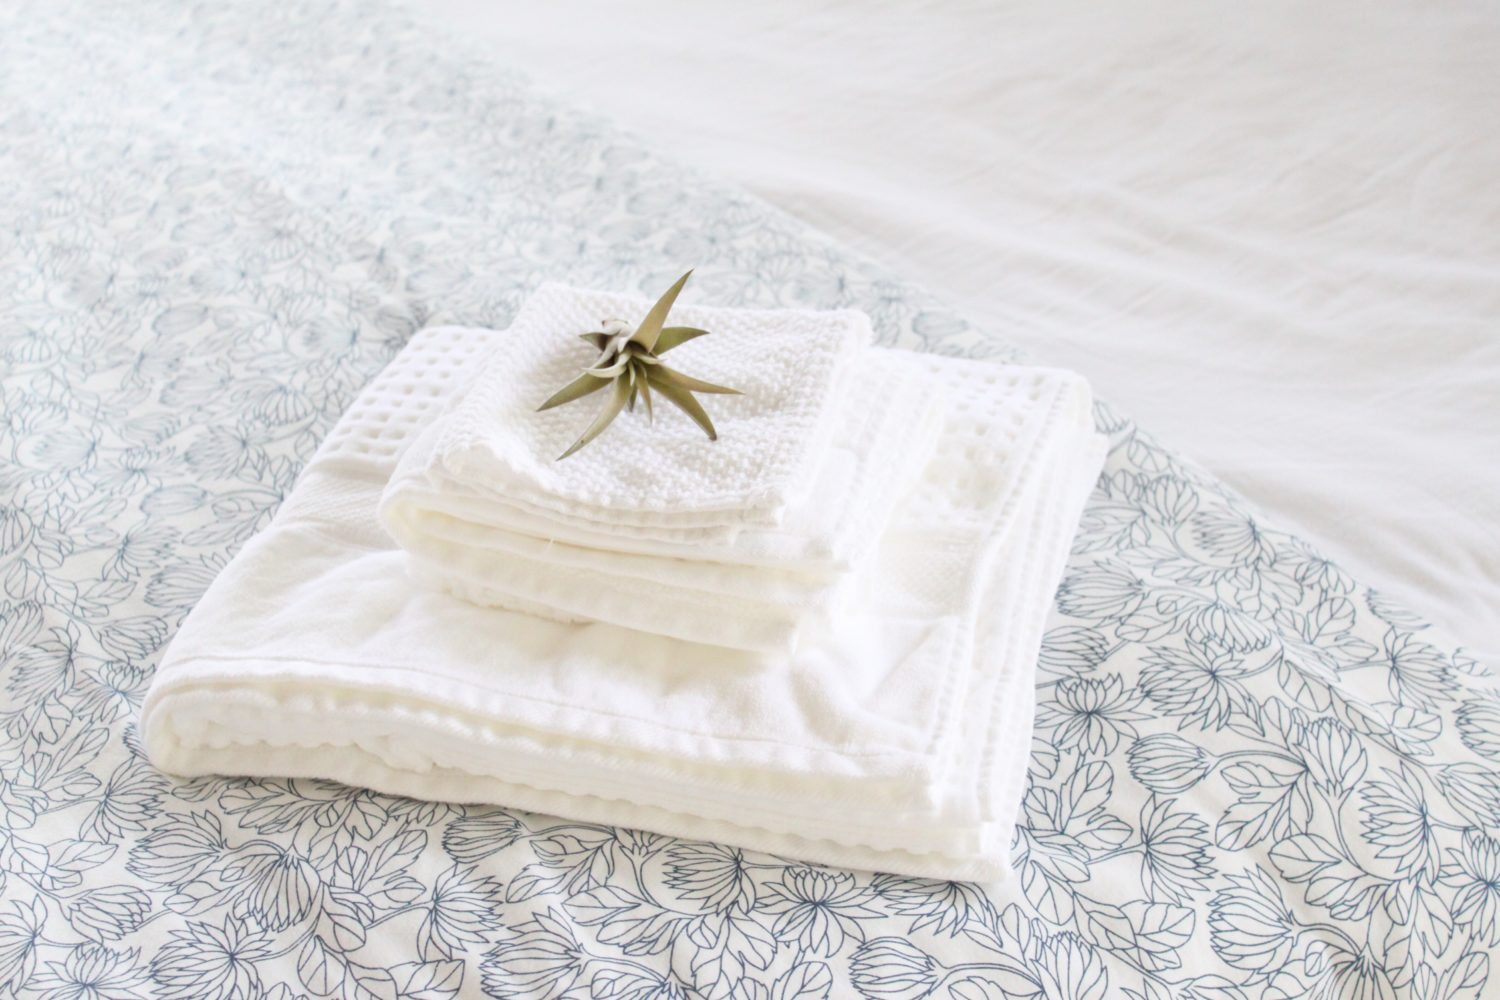 Top 10 Wedding Registry Gifts From Bed Bath Beyondblueprint Guides